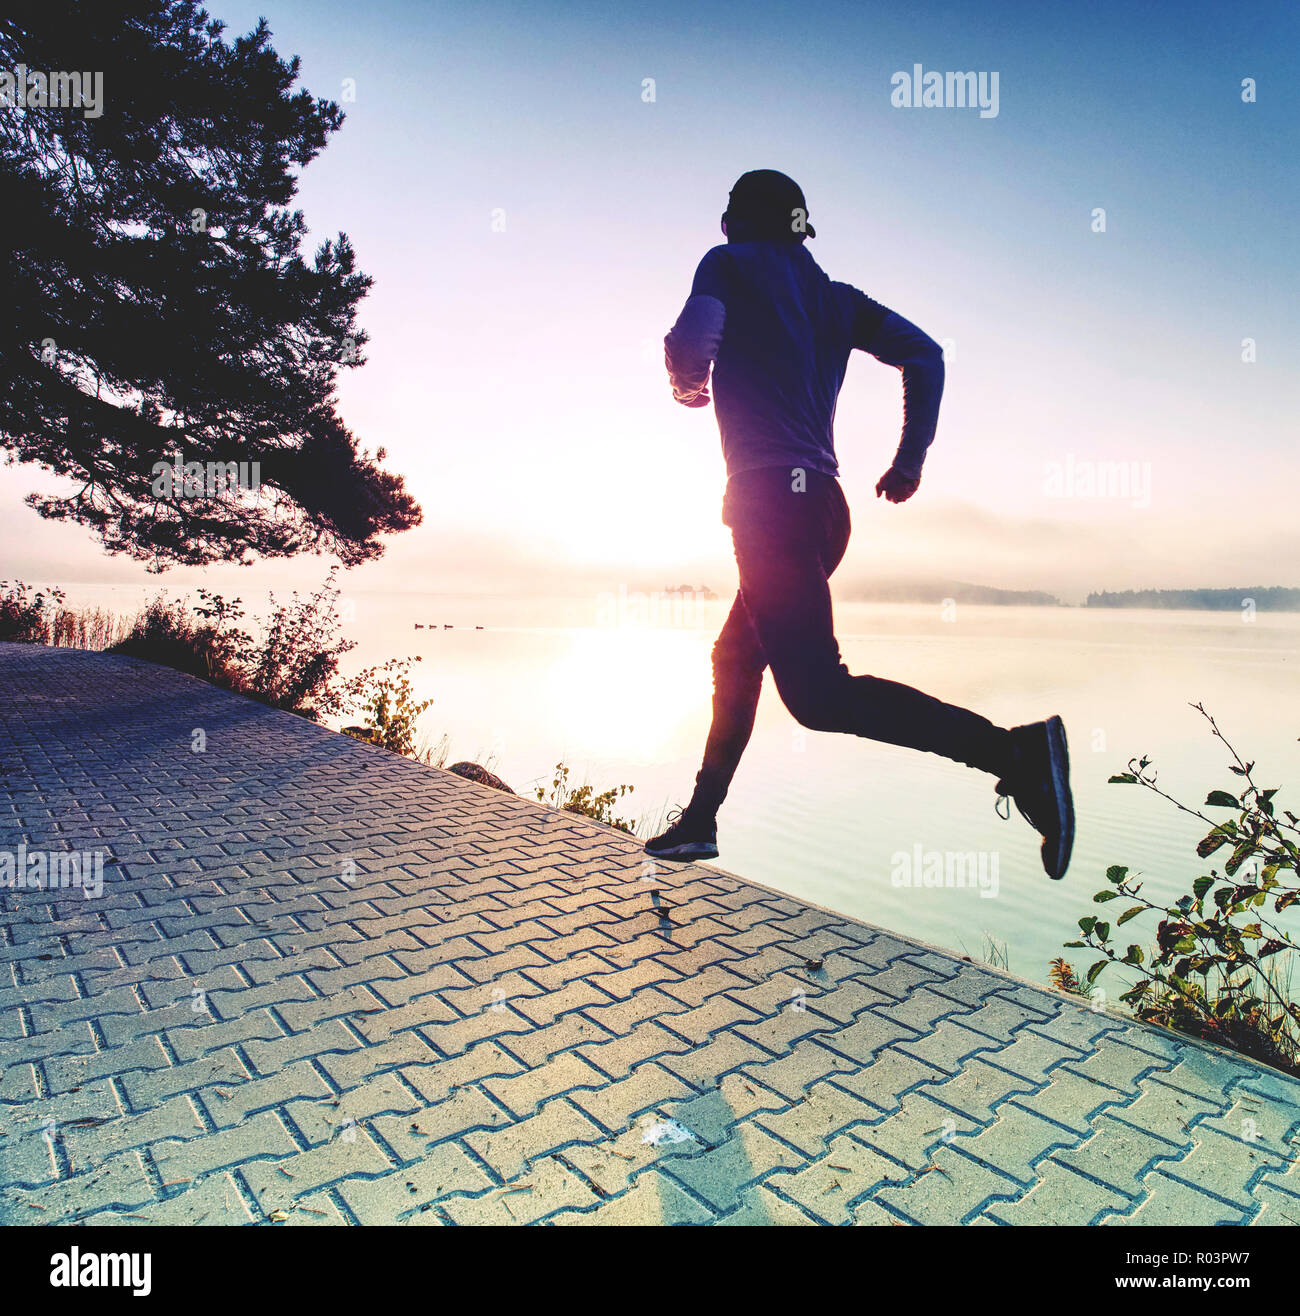 Man running on lake shore pavement during sunrise or sunset - healthy lifestyle concept Stock Photo